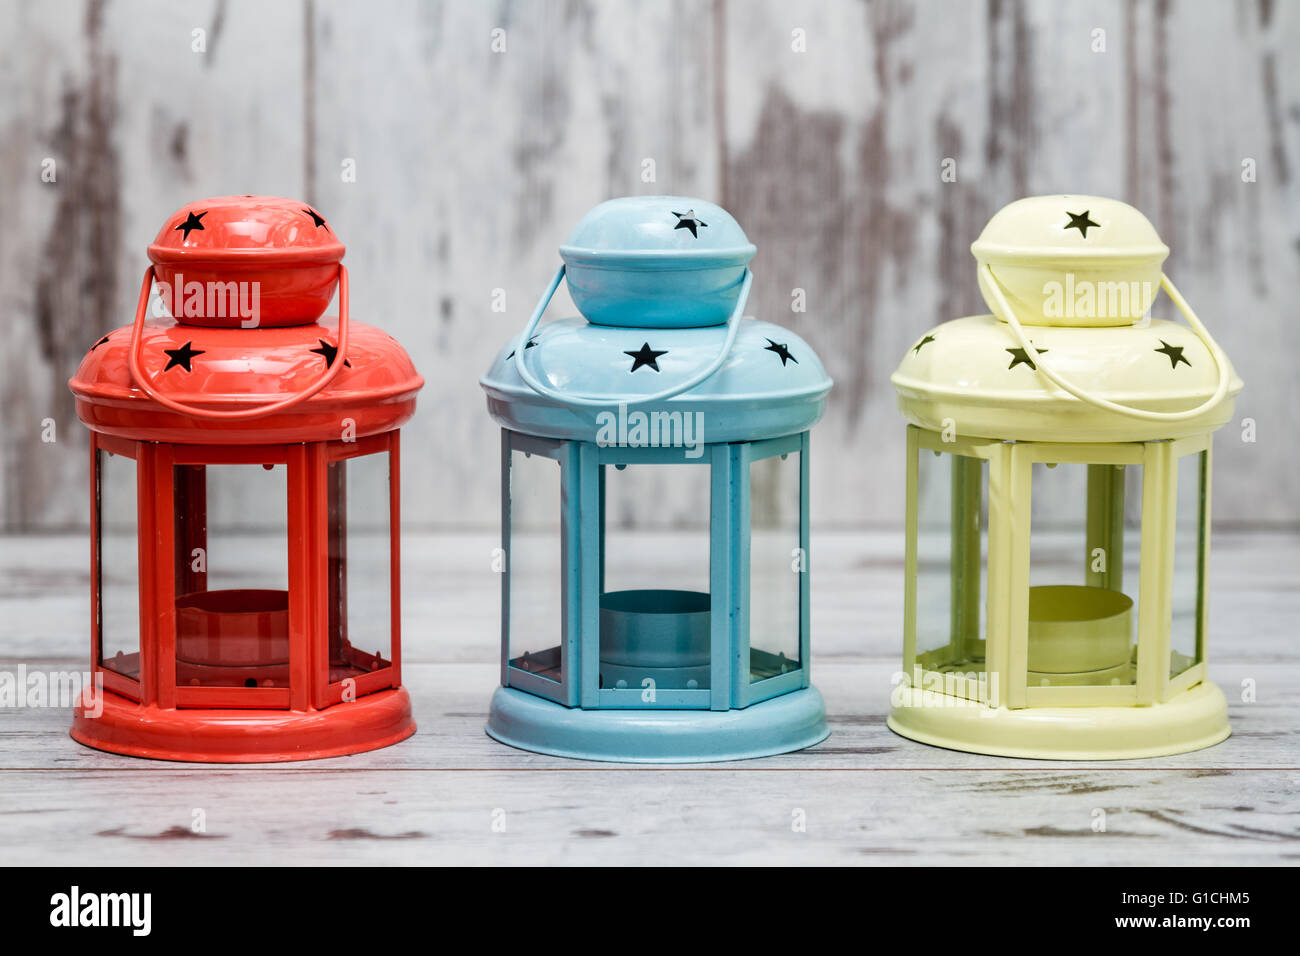 Colorful candle holders on white wooden background - Stock Image